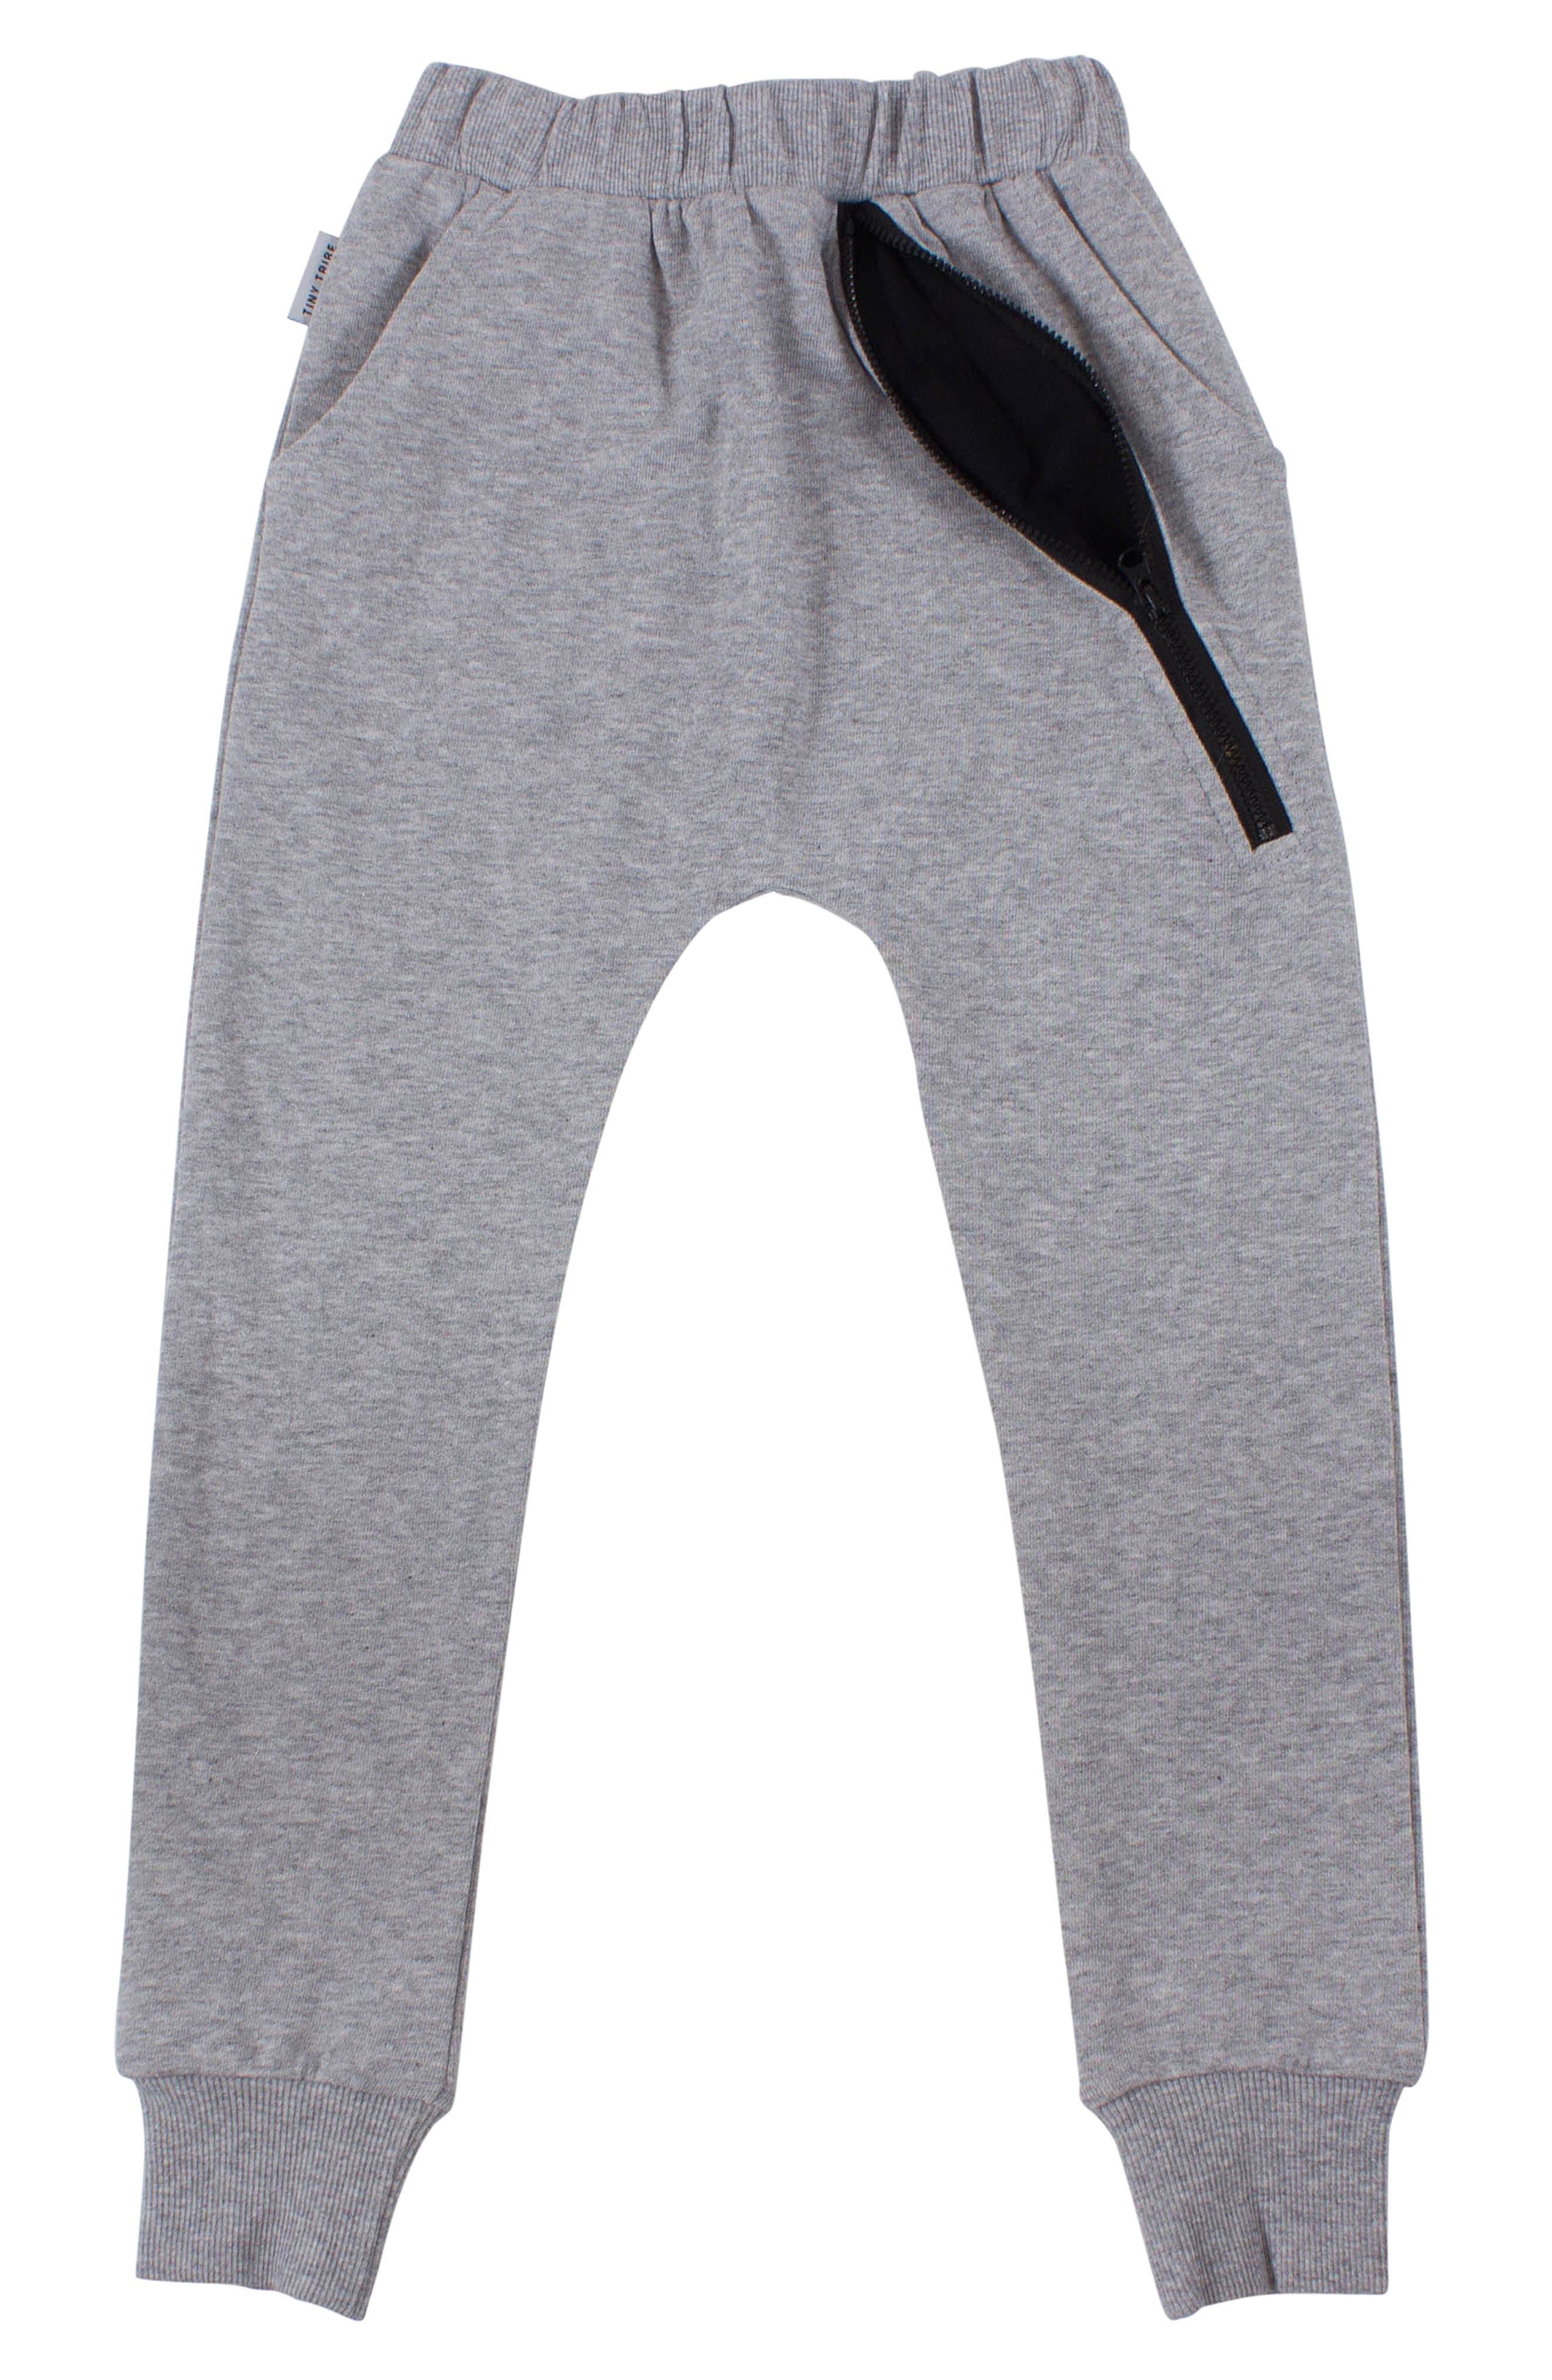 Zip Sweatpants,                             Alternate thumbnail 2, color,                             GREY MARL